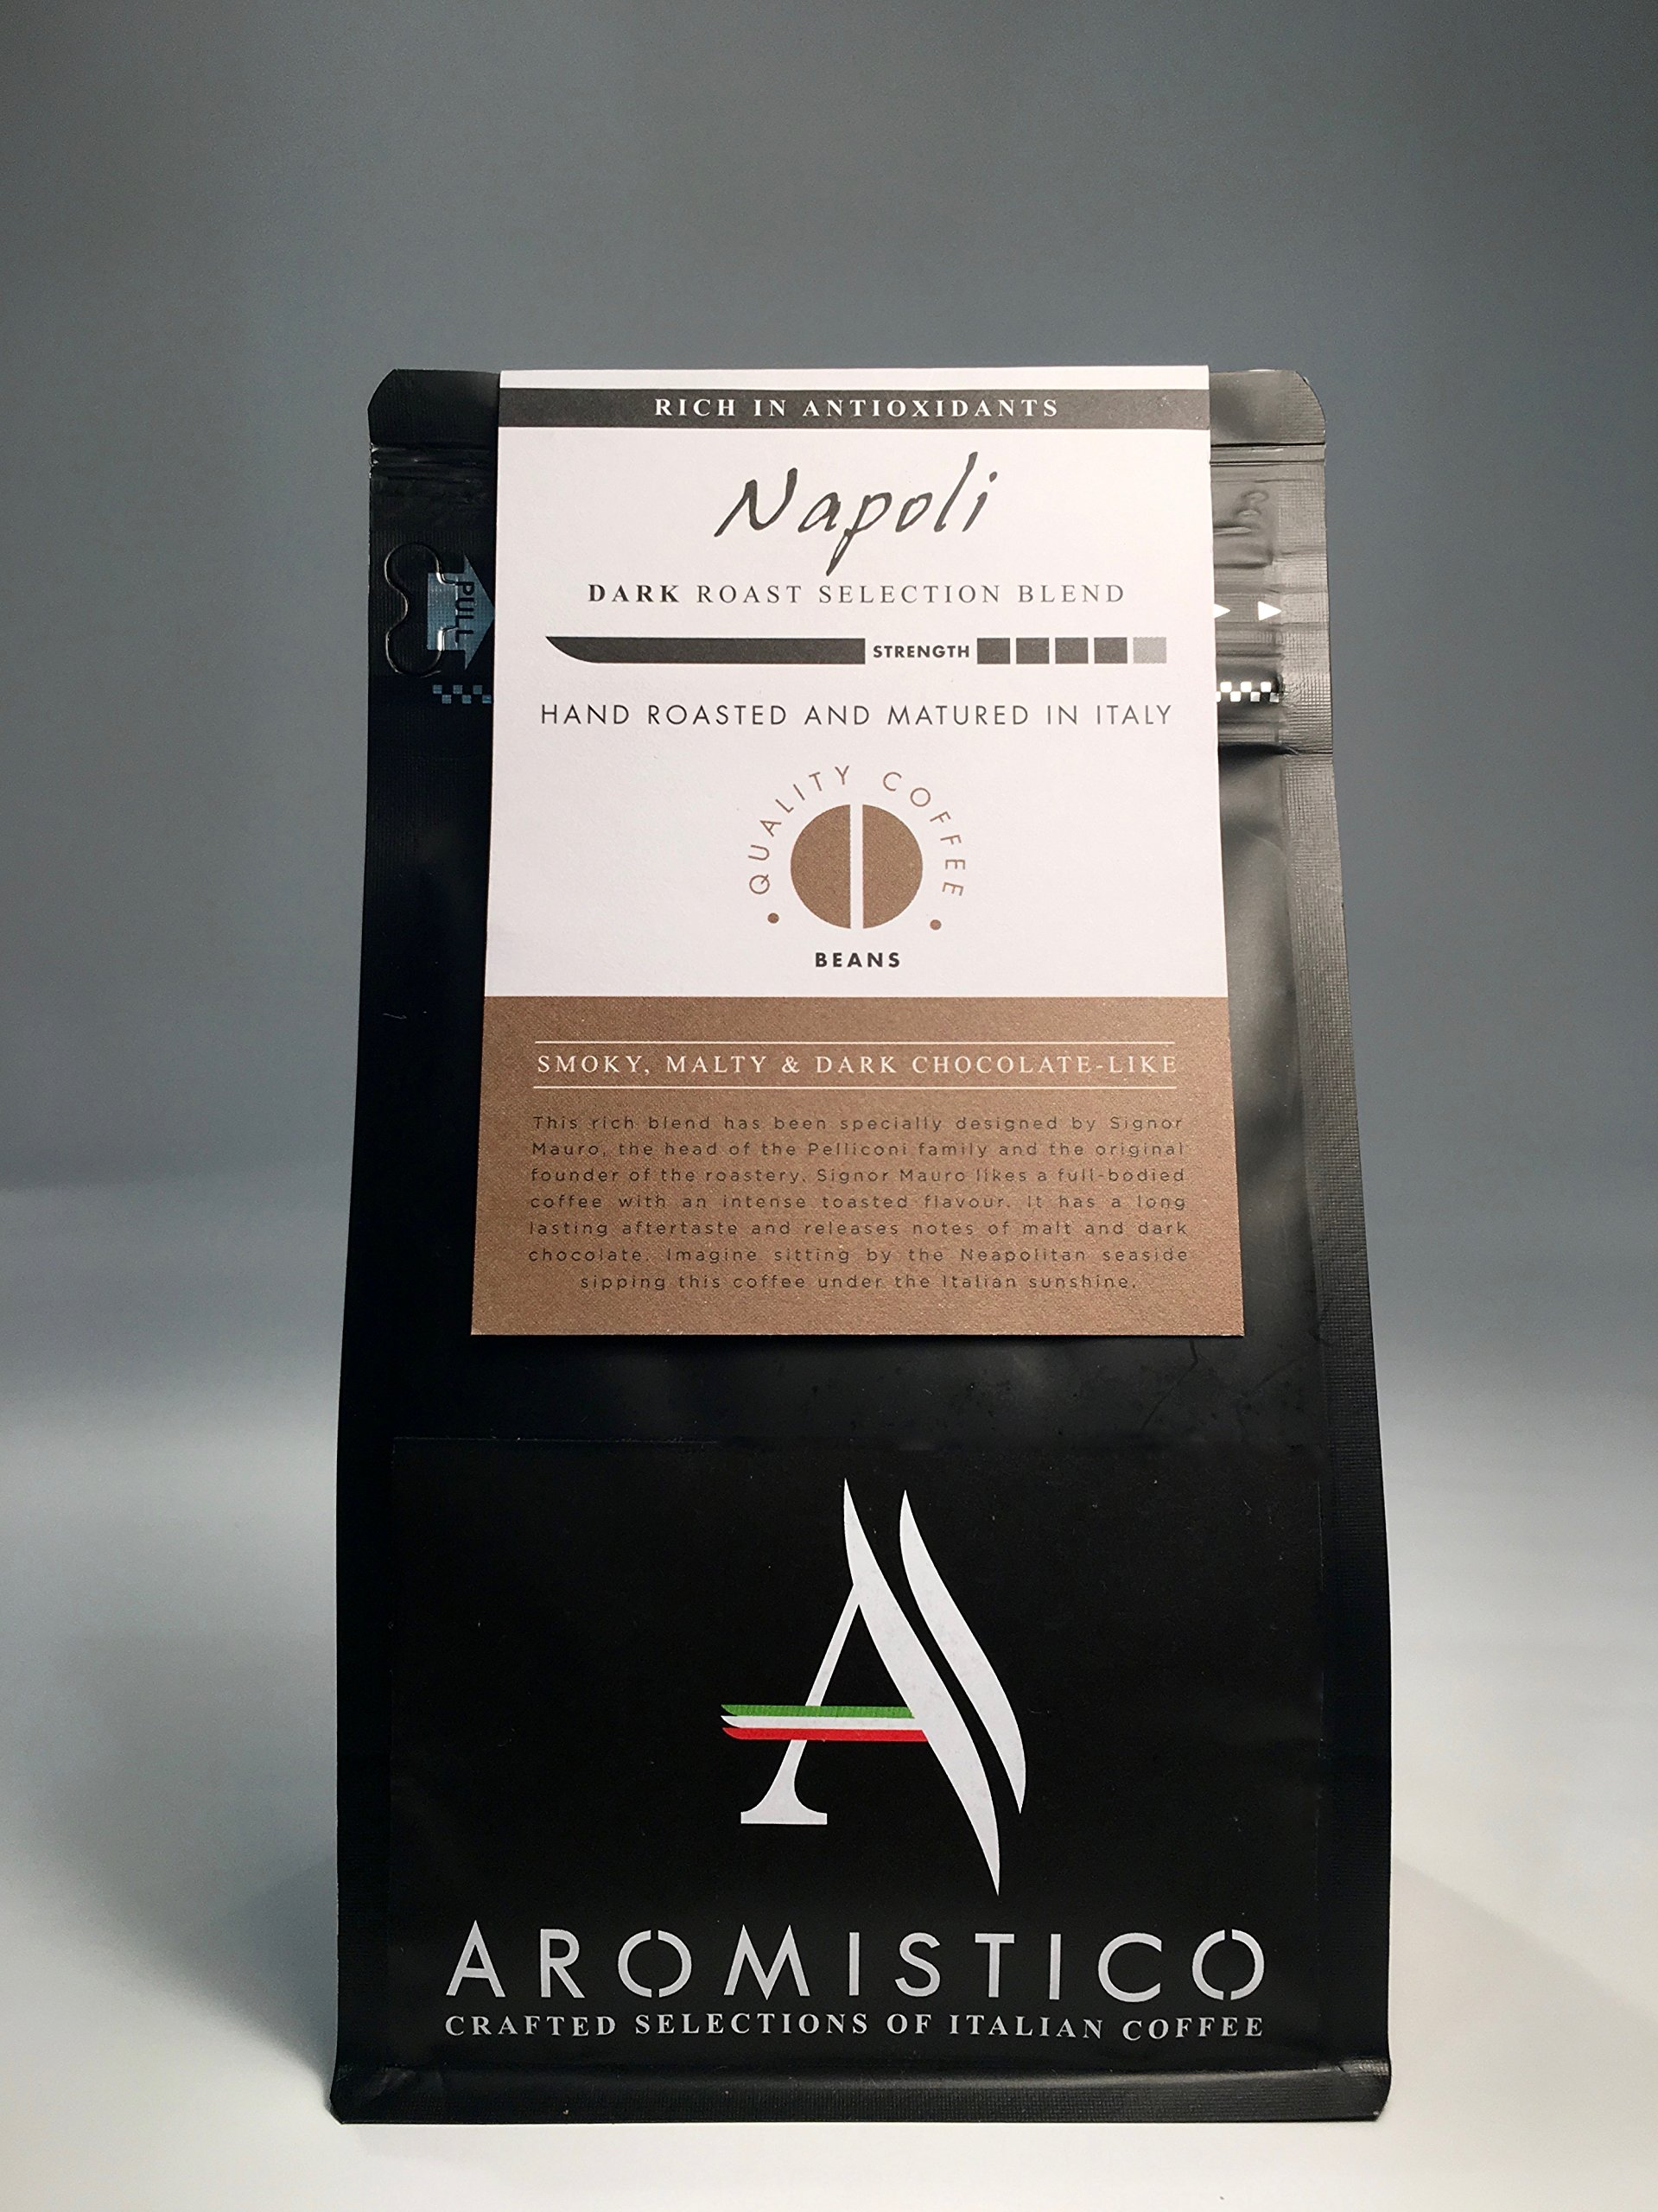 AROMISTICO-Coffee-Rich-Strong-Gourmet-Dark-Roast-Premium-Coffee-Beans-Napoli